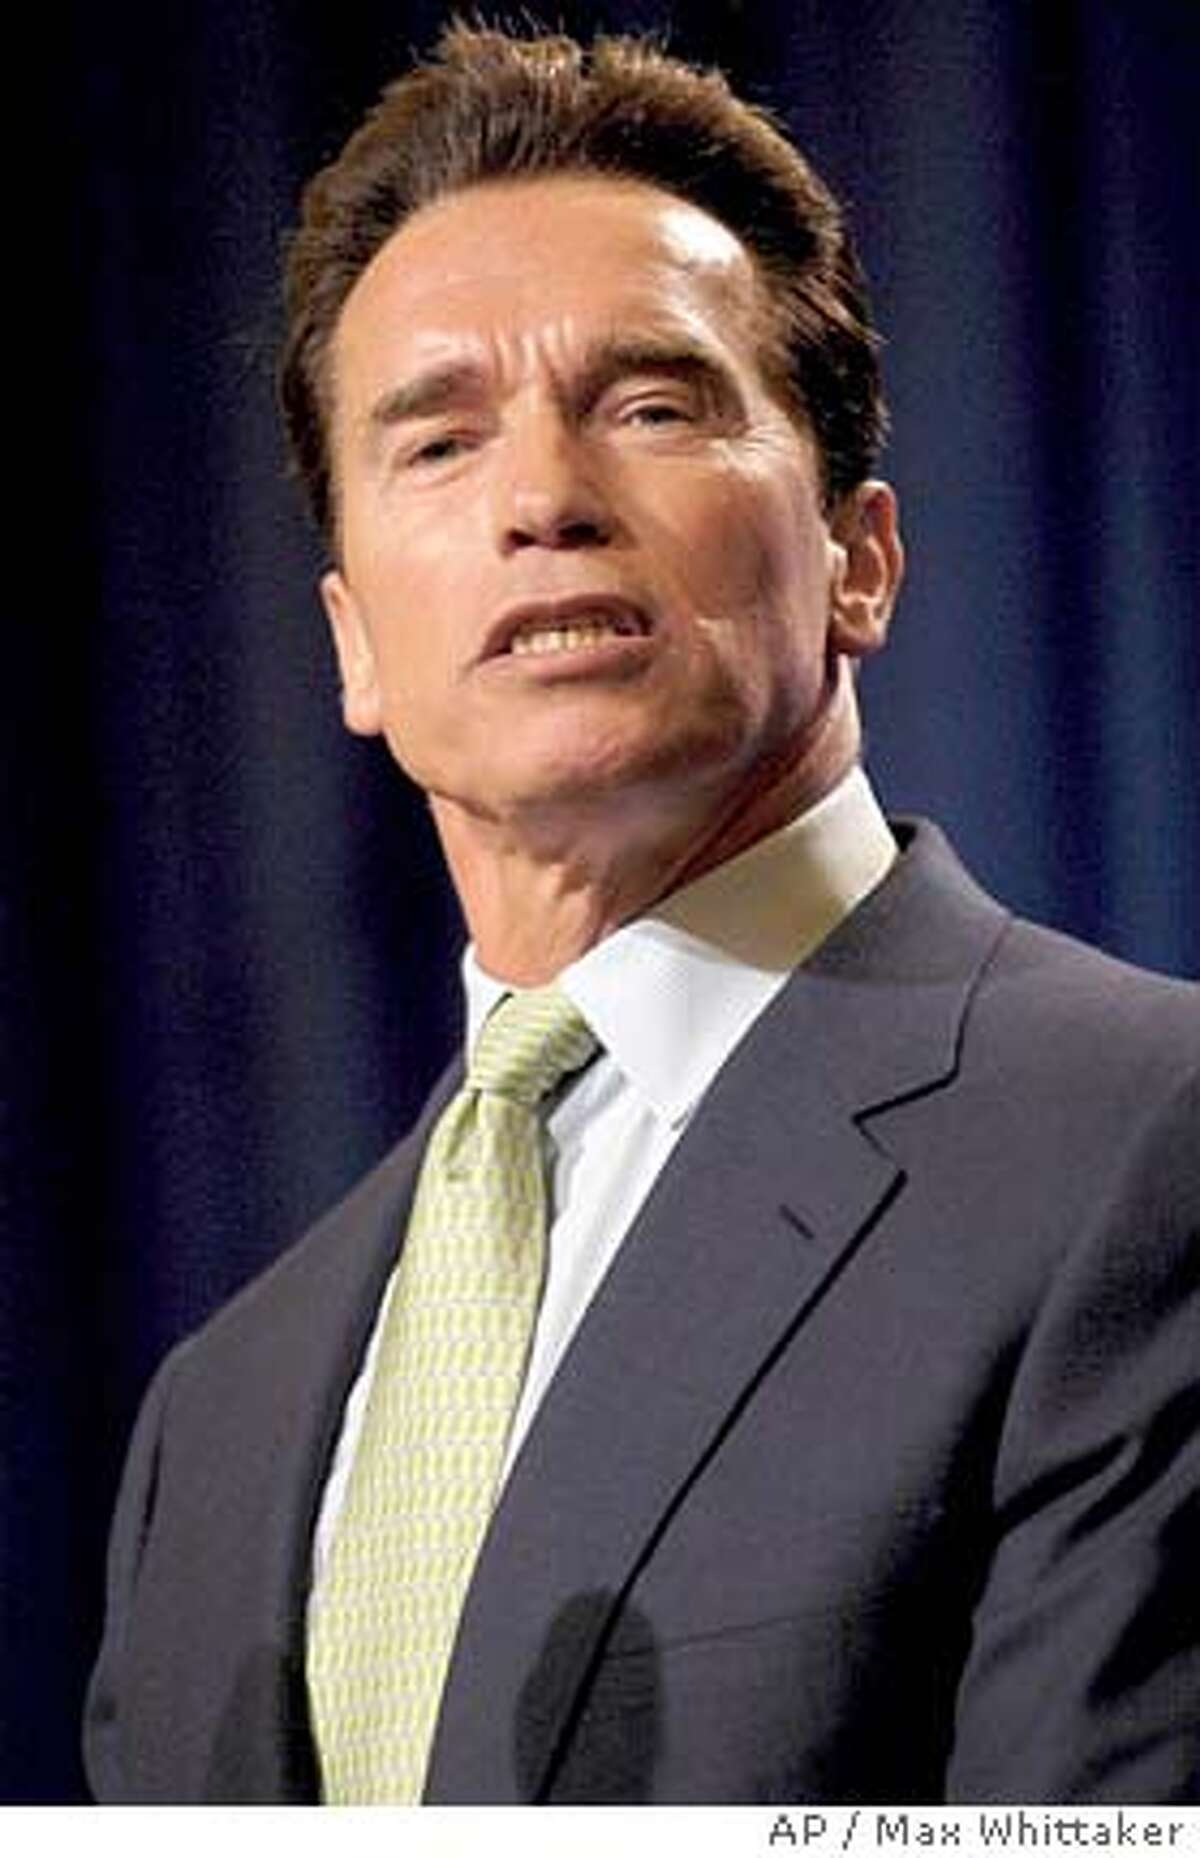 California Governor Arnold Schwarzenegger discusses his redistricting reform proposal at the Public Policy Institute of California and New America Foundation's Legislative Reform luncheon in Sacramento, Calif. on Feb. 24, 2005. (AP Photo/Max Whittaker)